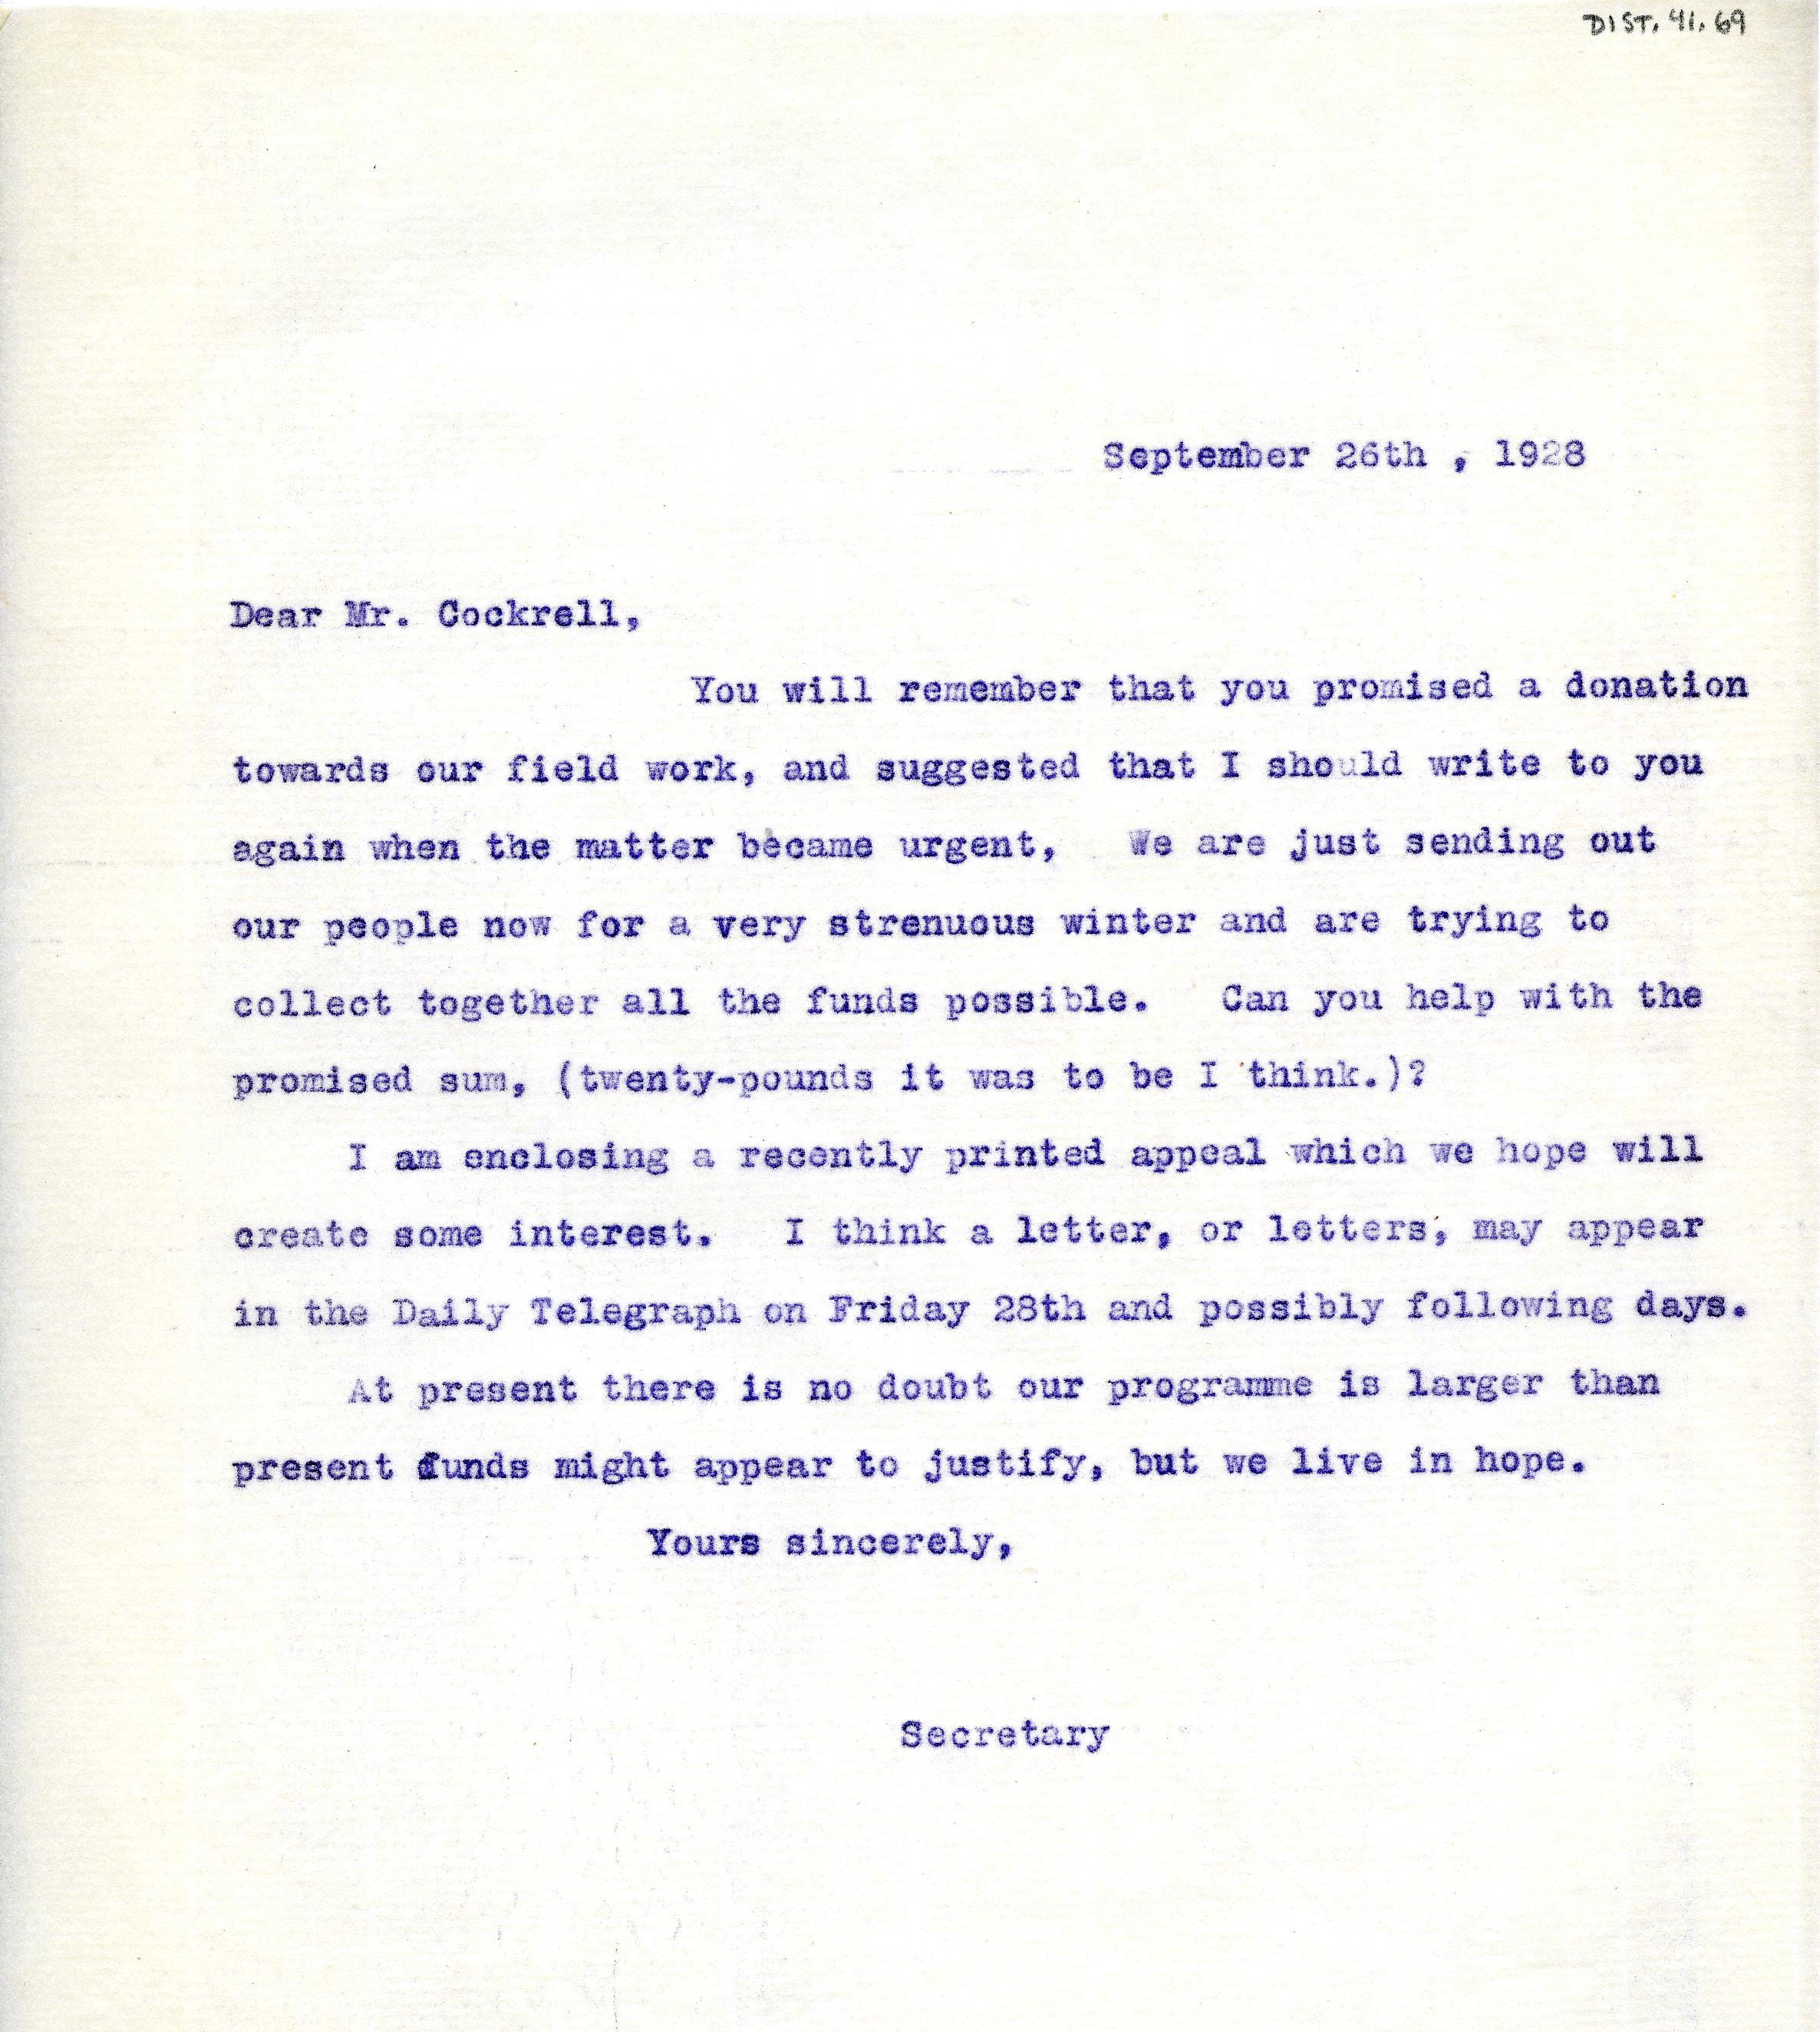 1922-76 Miscellaneous correspondence with museums DIST.41.69